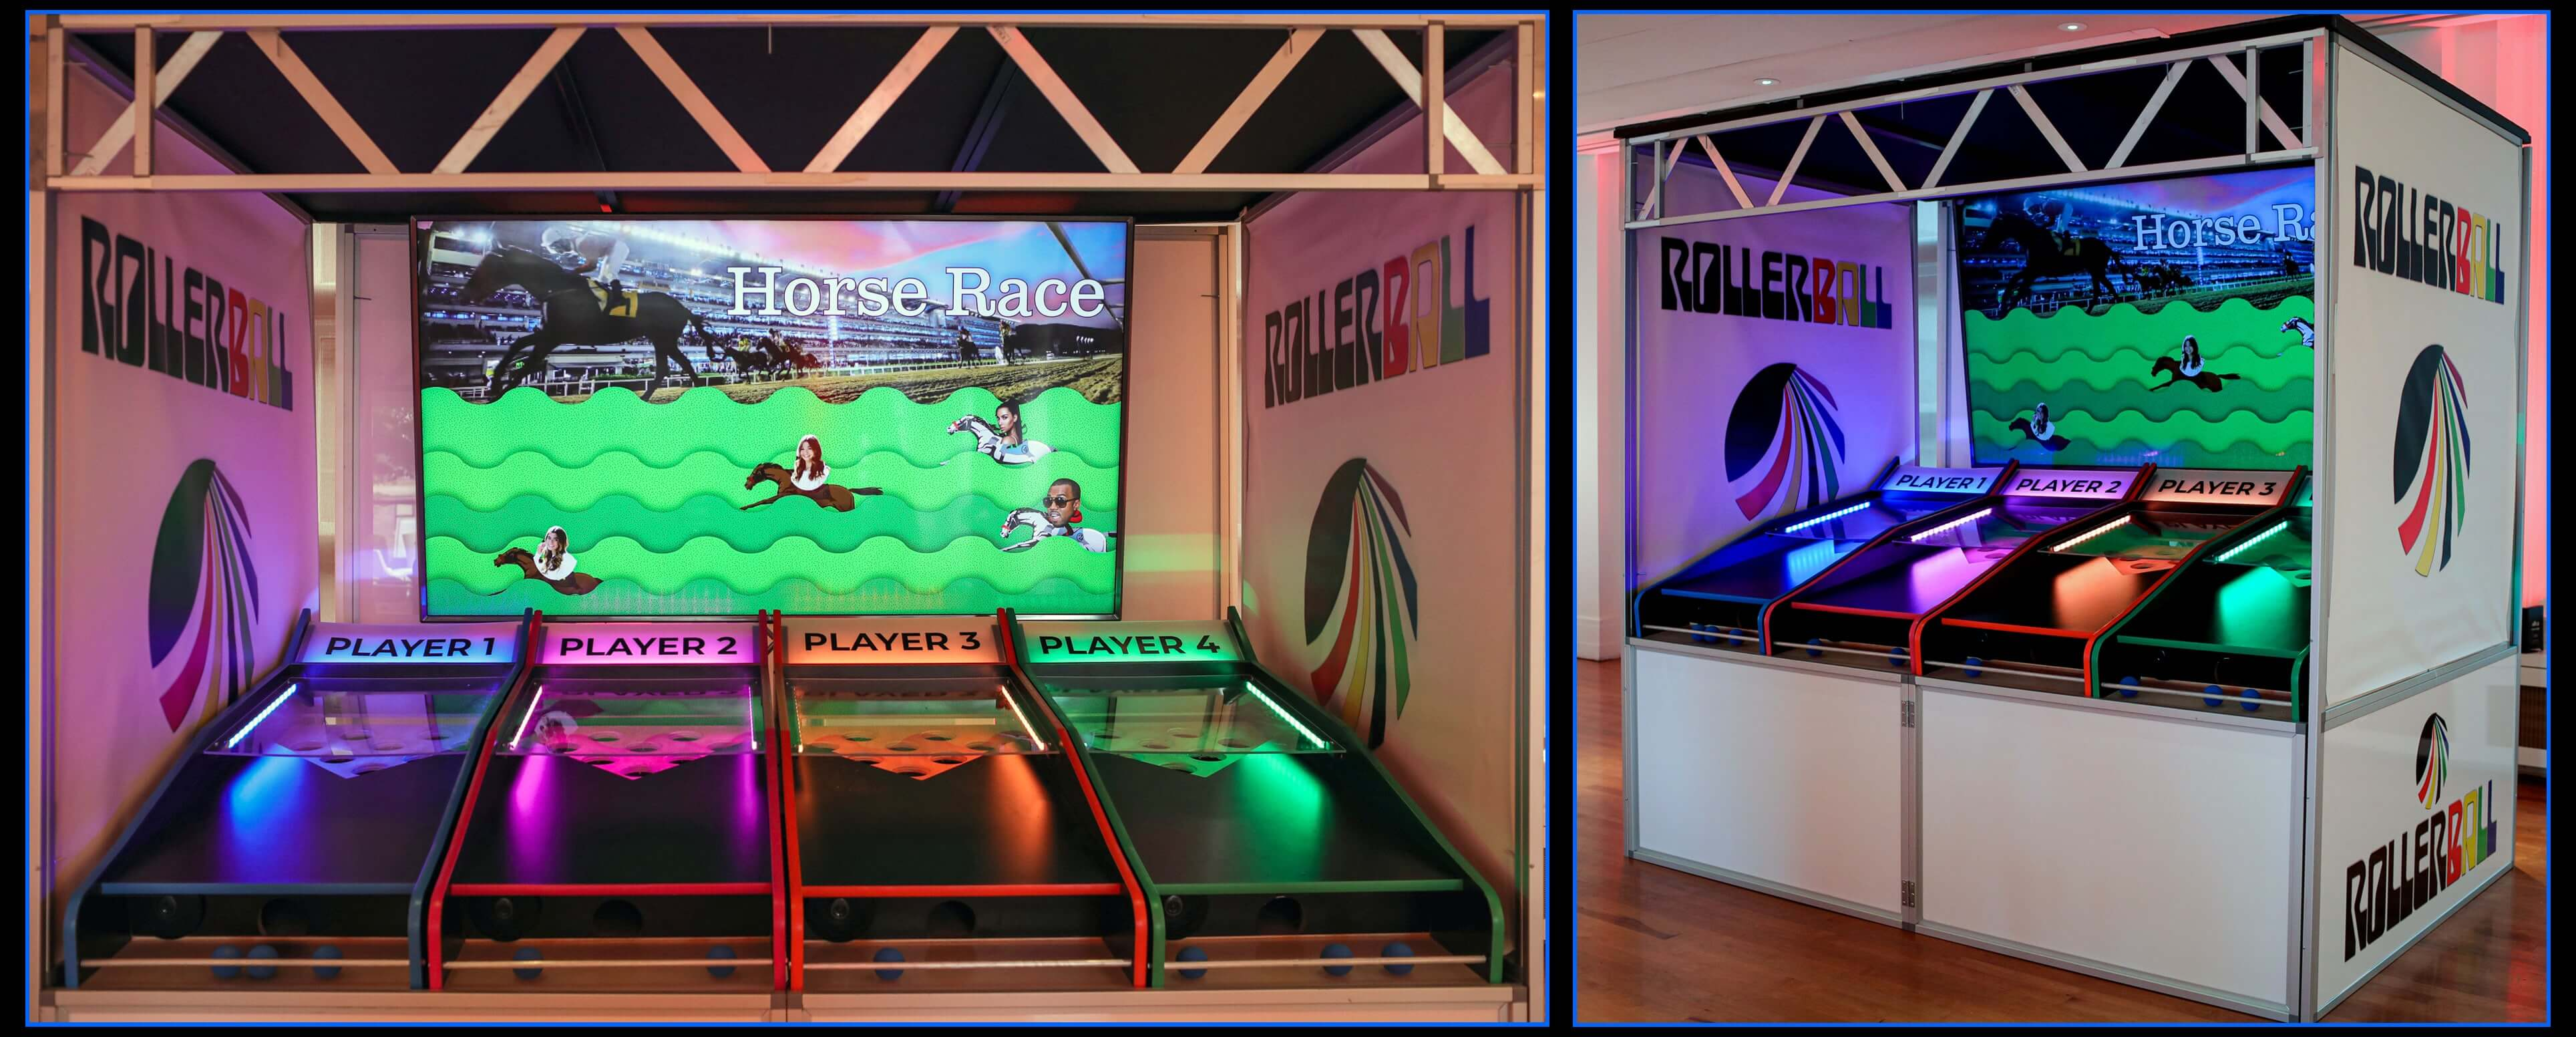 Roller Ball game rental as part of CoCo Events hi-tech game rentals